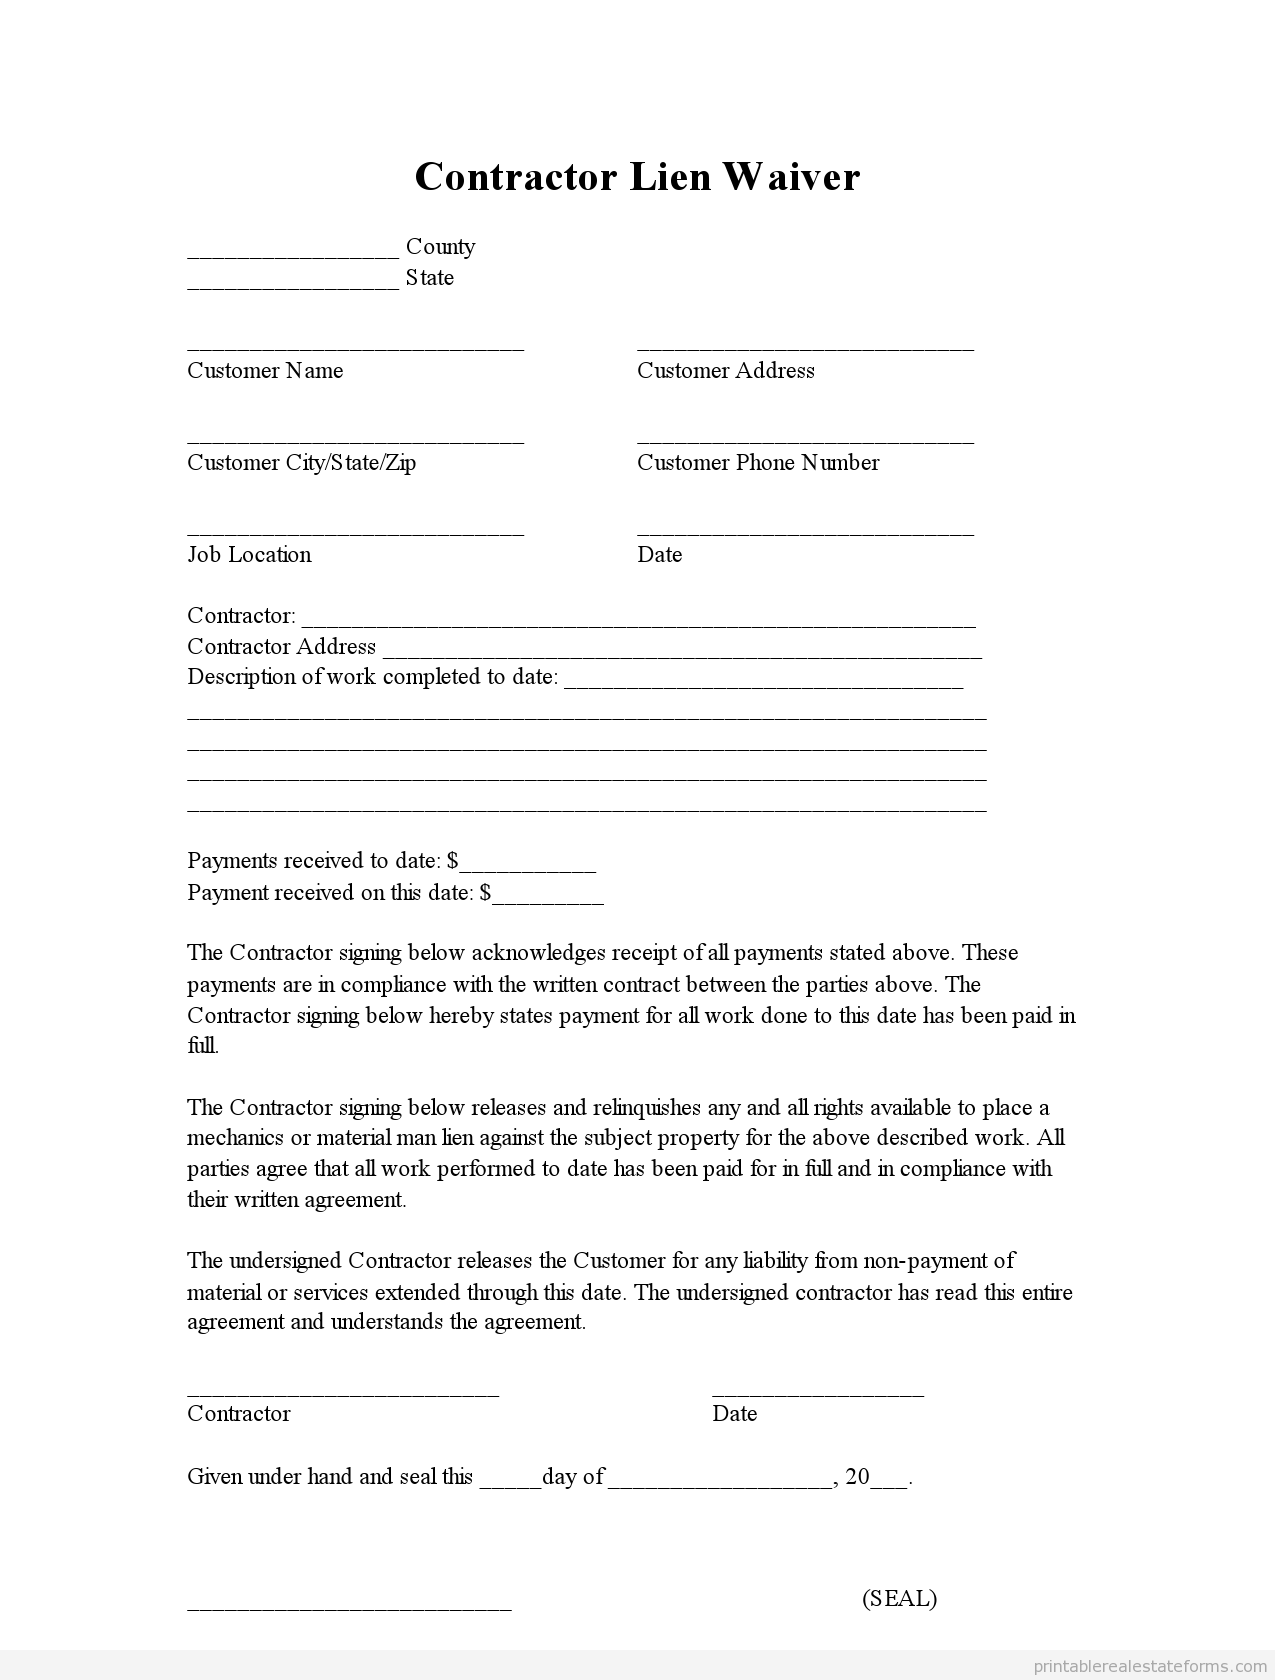 Lien Waiver Fill Online, Printable, Fillable, Blank | PDFfiller